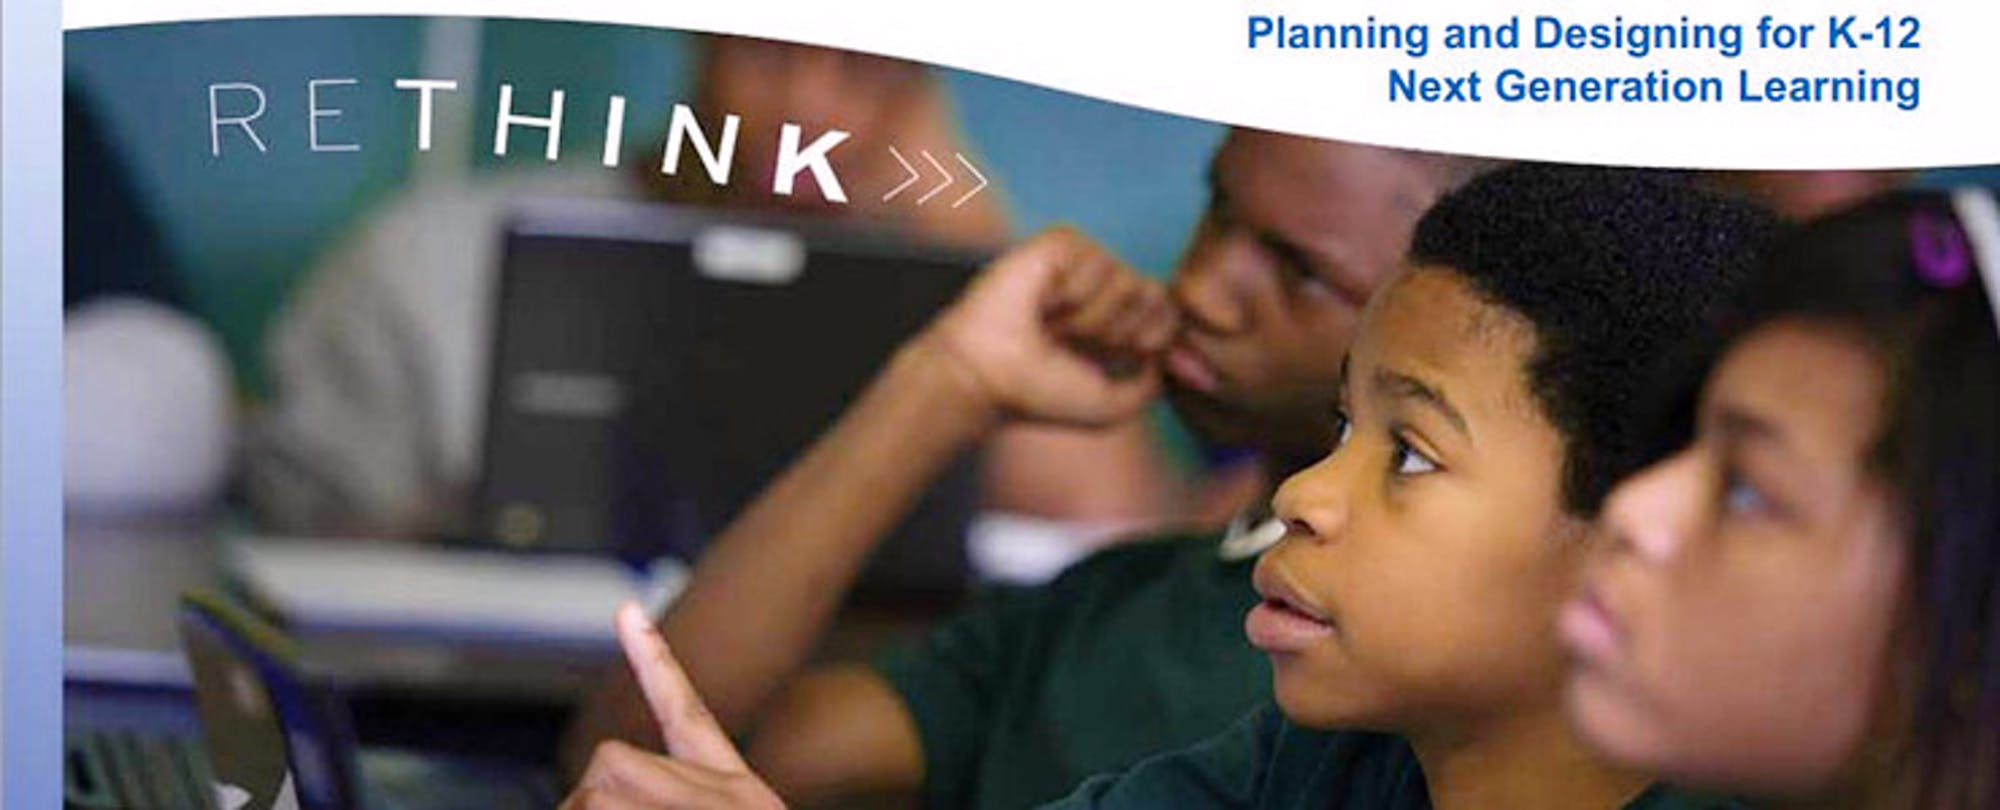 A Toolkit for Next Generation Schools